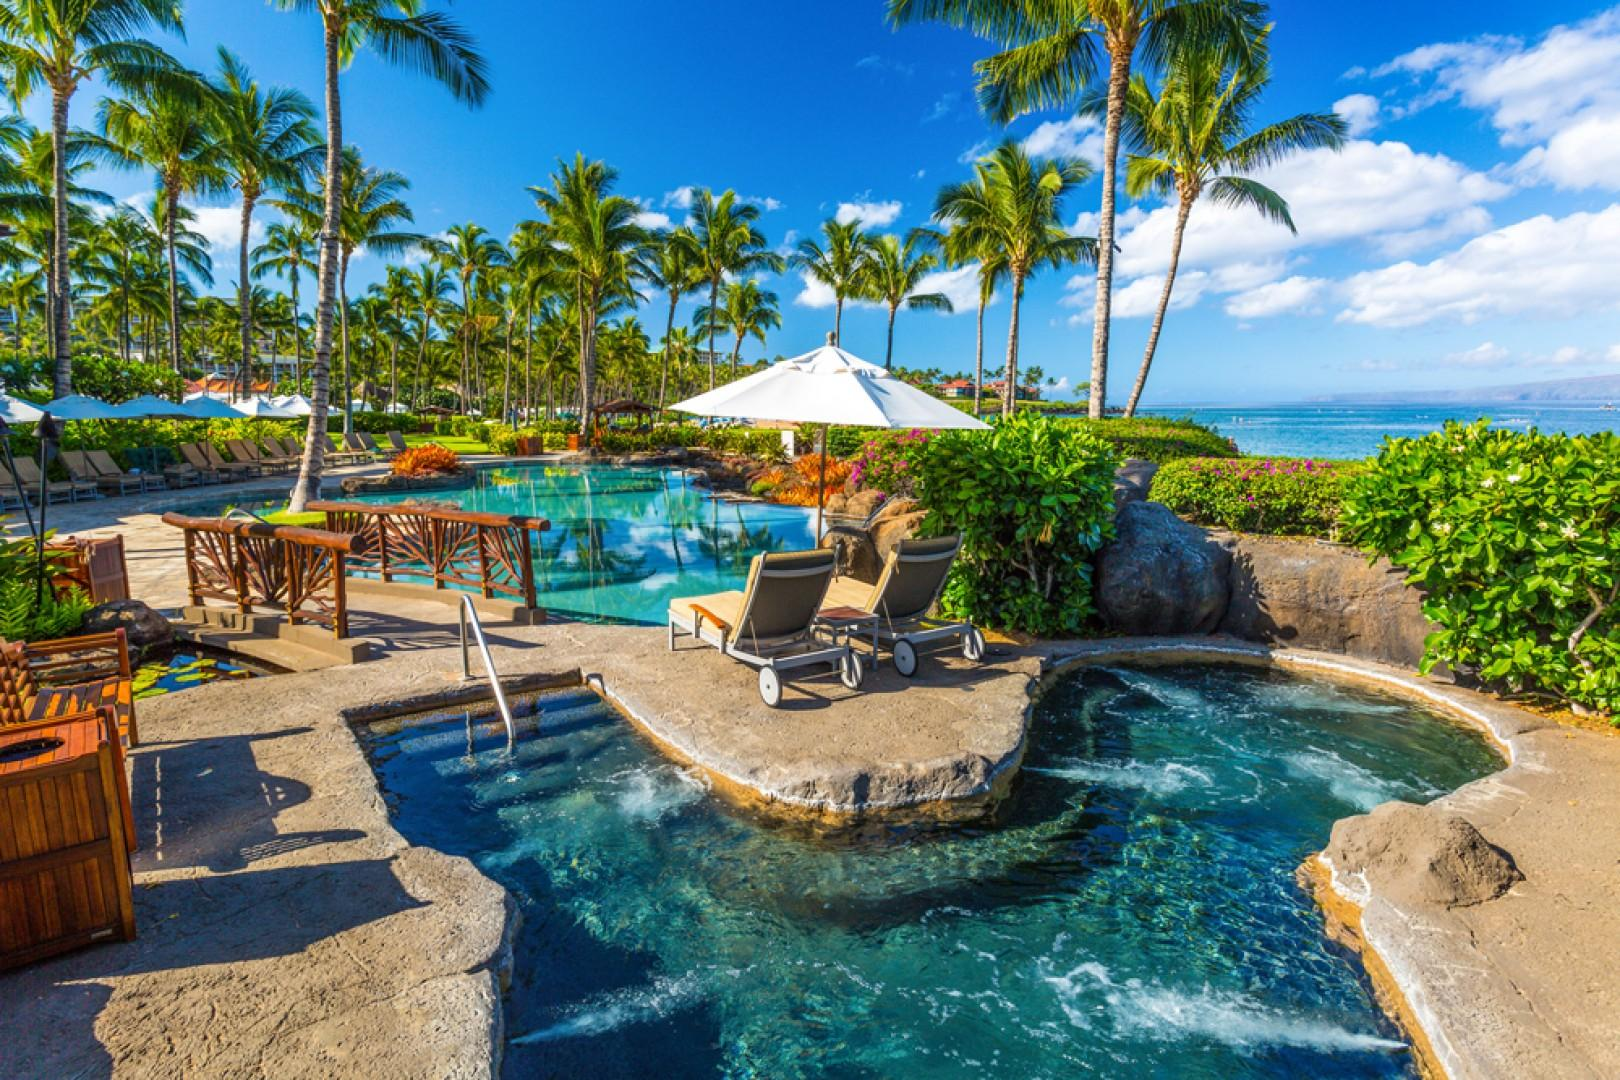 Sun-soaked Ocean View Adult-Use Spa Hot Tub (18 and over) Whirlpool Spa in Wailea Beach Villas